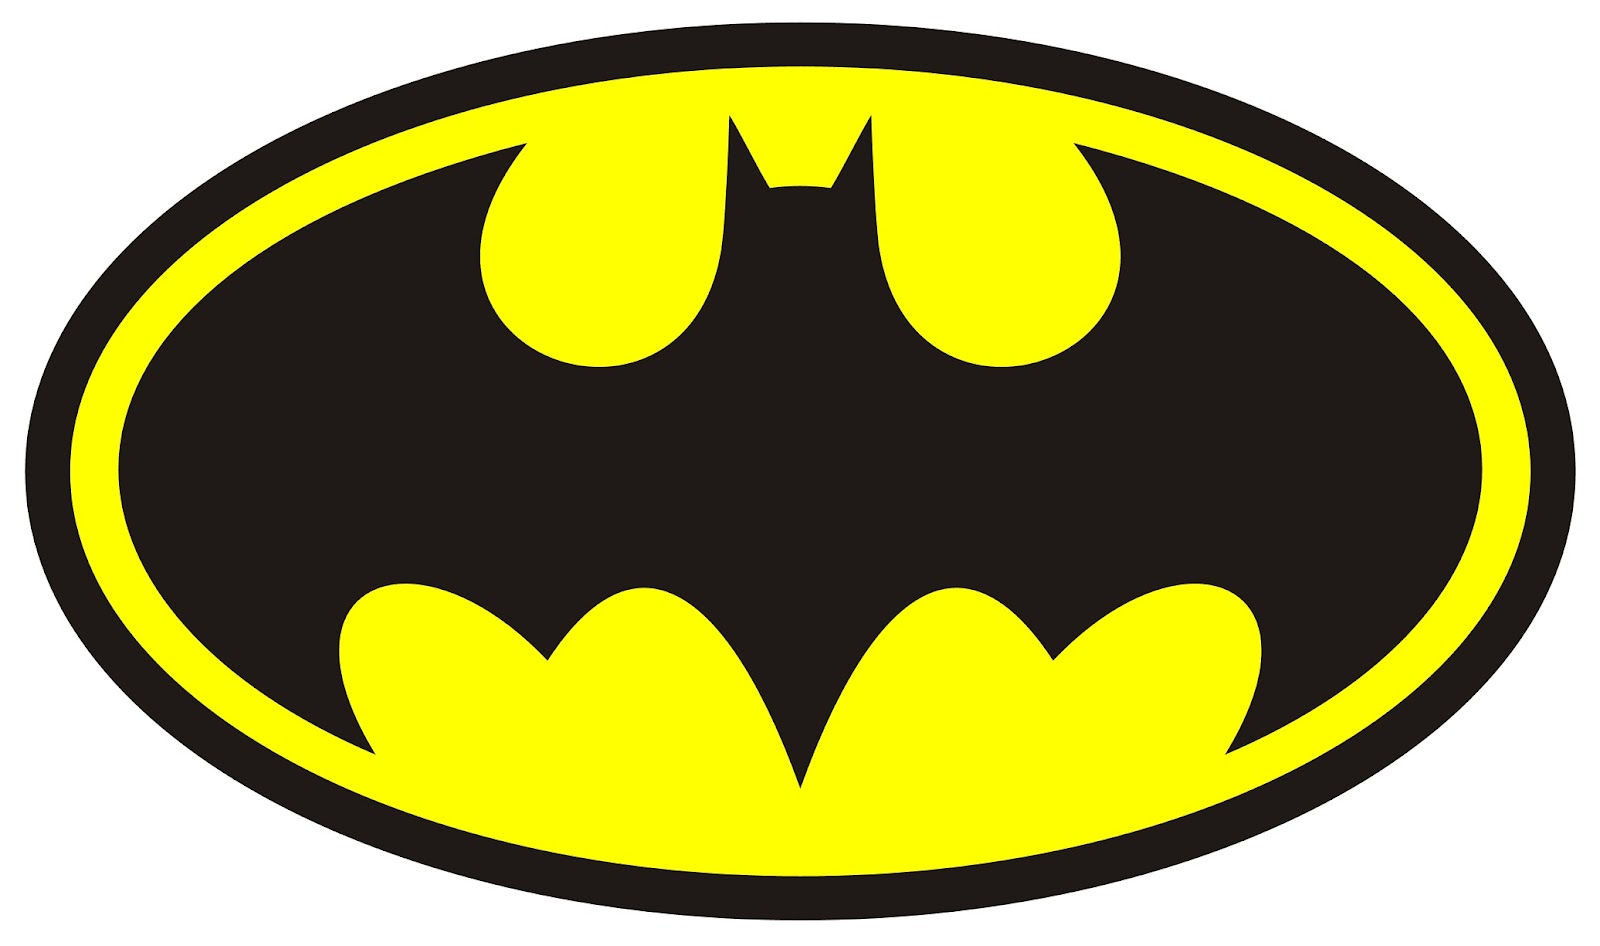 Invaluable image with regard to batgirl logo printable